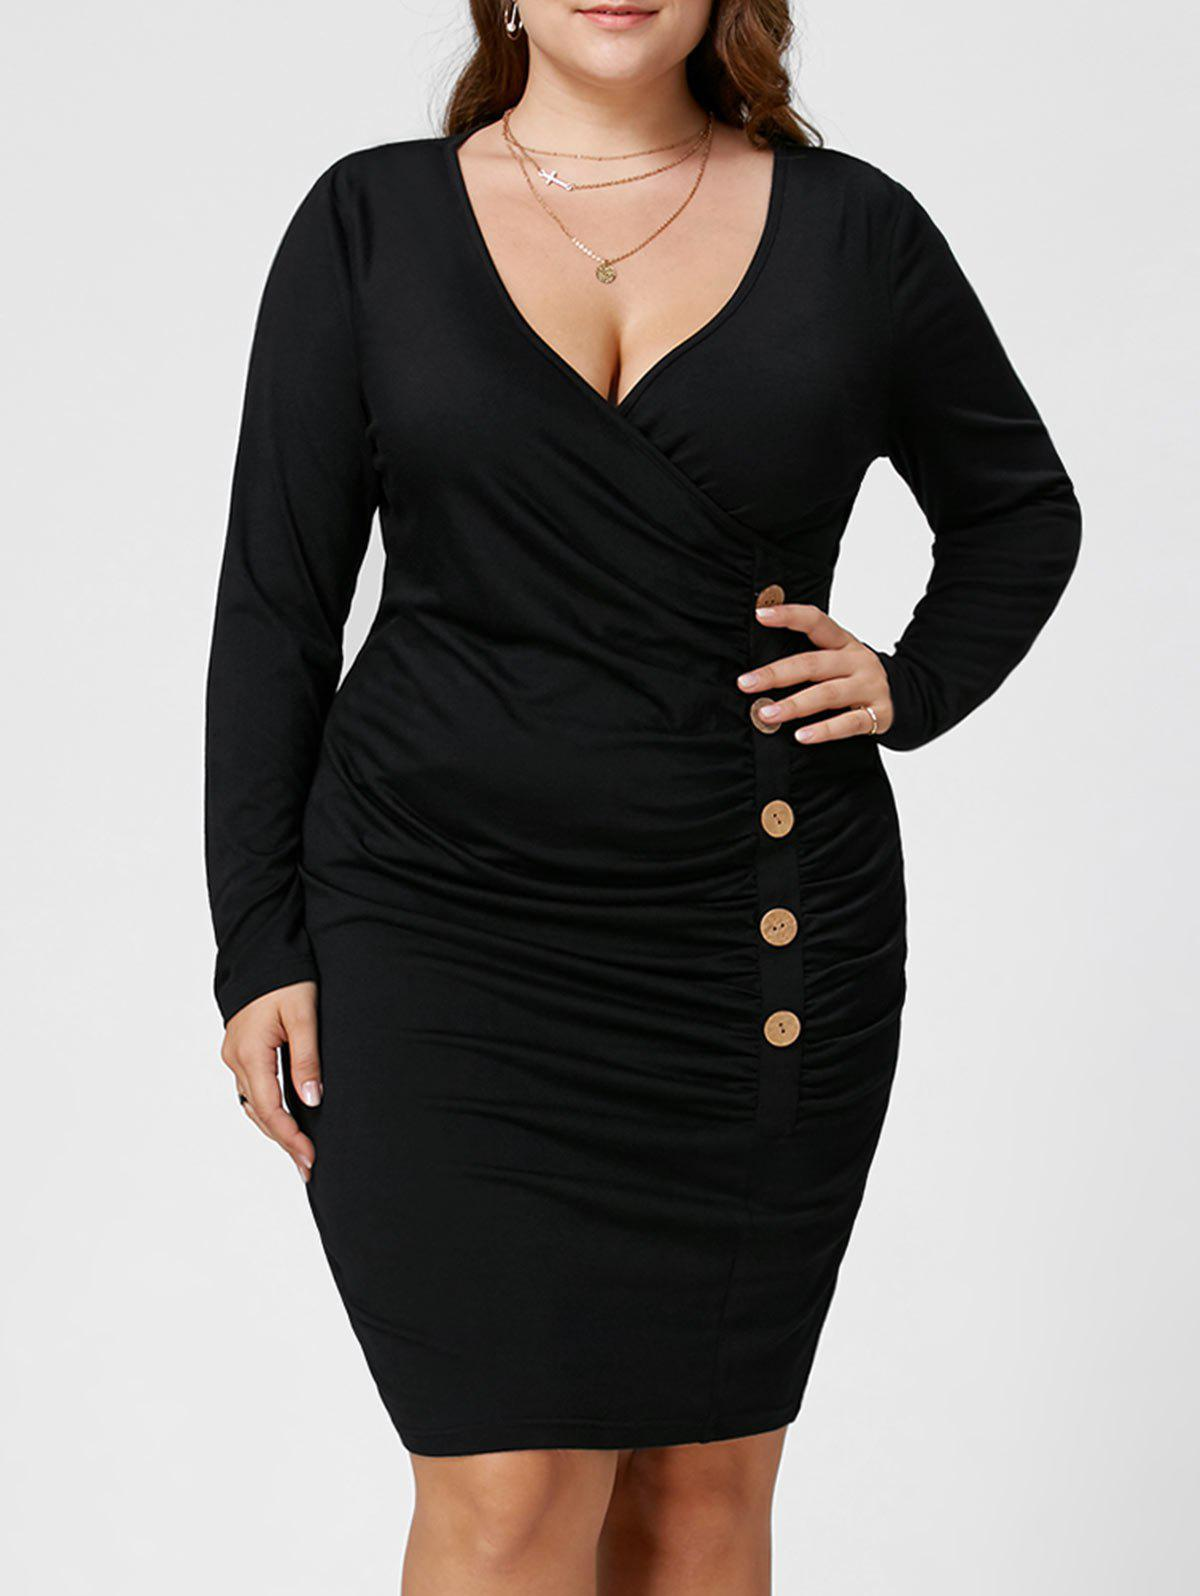 Plus Size Button Detail Ruched Tight DressWOMEN<br><br>Size: 5XL; Color: BLACK; Style: Brief; Material: Polyester,Spandex; Silhouette: Sheath; Dresses Length: Knee-Length; Neckline: V-Neck; Sleeve Length: Long Sleeves; Embellishment: Button; Pattern Type: Solid Color; With Belt: No; Season: Fall,Spring,Summer; Weight: 0.3700kg; Package Contents: 1 x Dress;